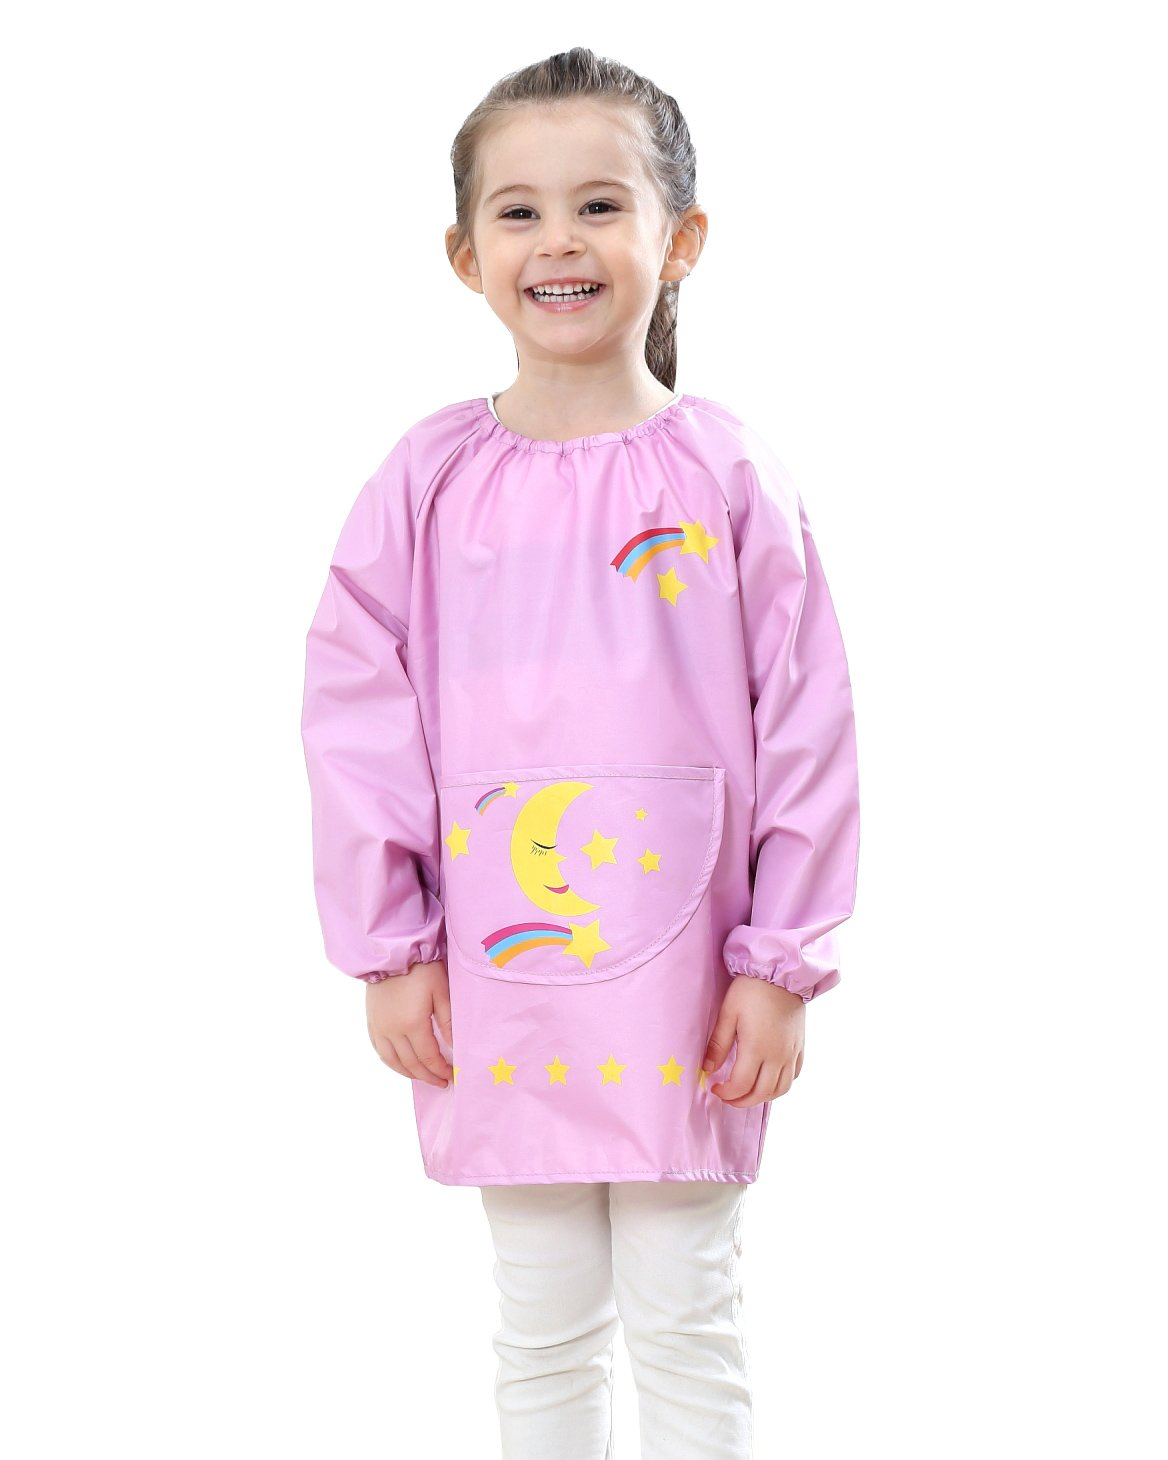 Children's Art Smock Pullover Long Sleeve Drawing Apron Toddler Baby Waterproof Bib with Pocket Rainbow Painting Smock Pink 6-10 T